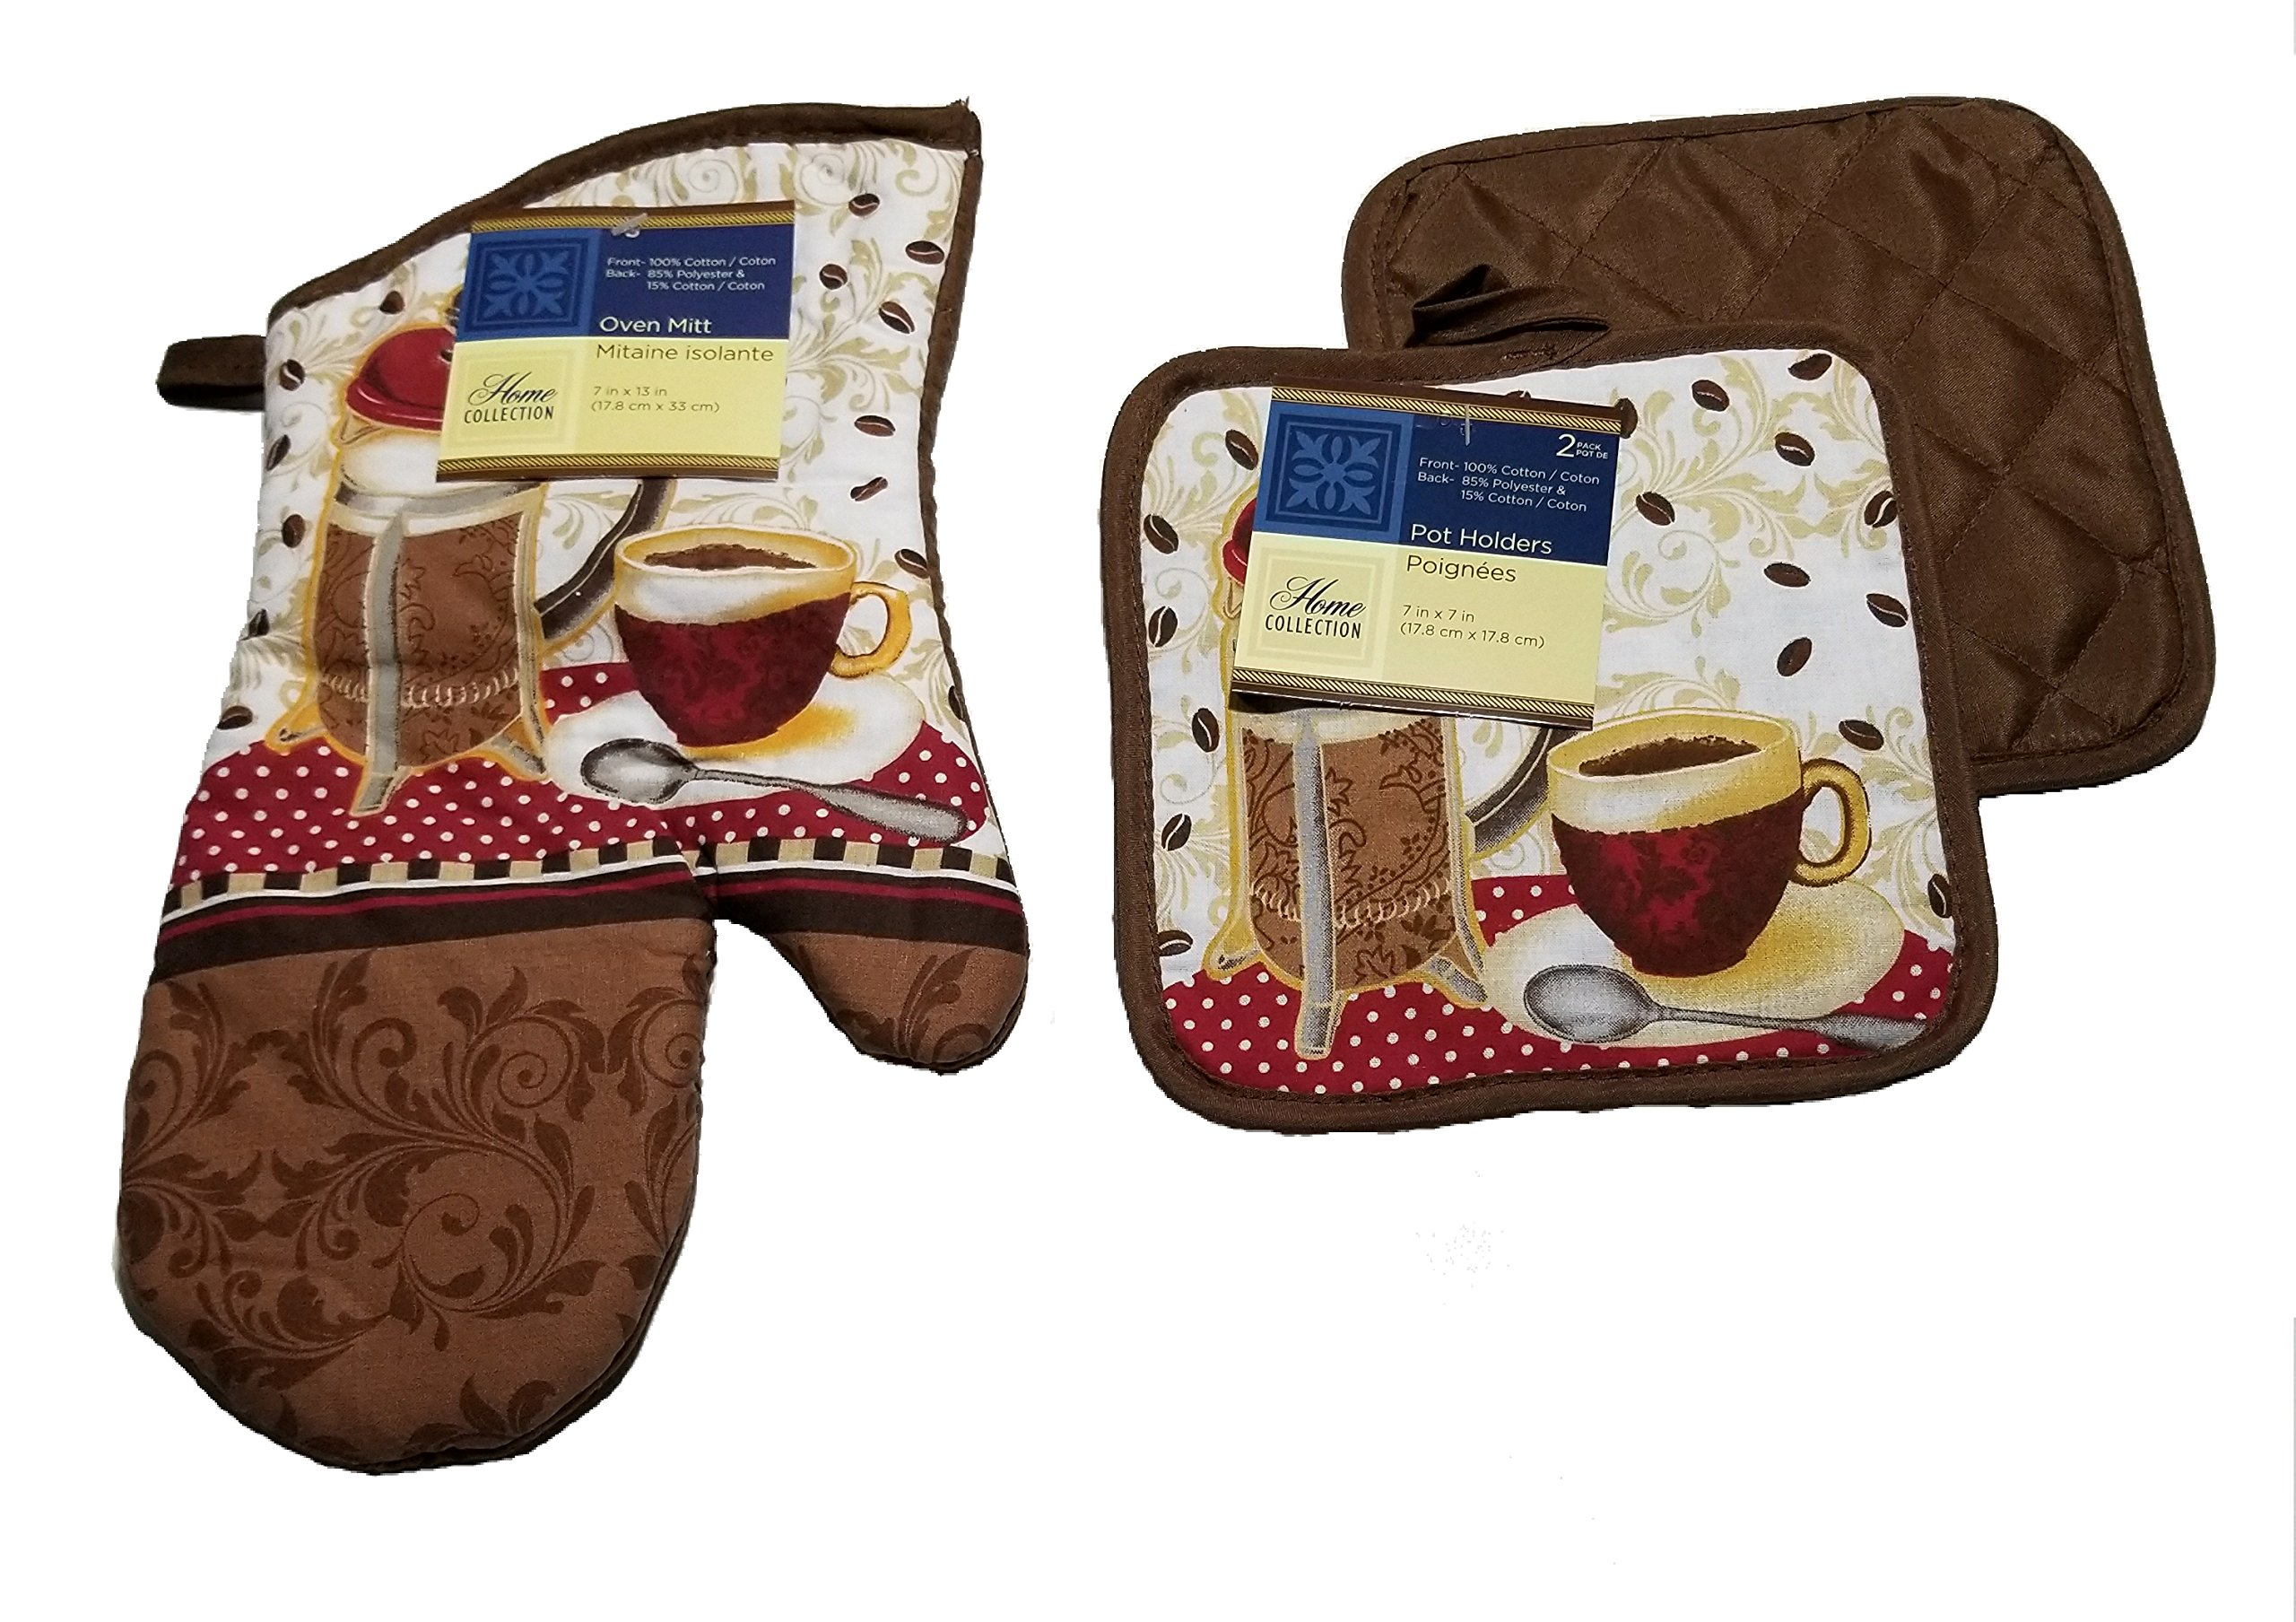 Home Collection 3 Piece Coffee Theme Kitchen Linen Set by One Oven Mitt & Two Pot Holders